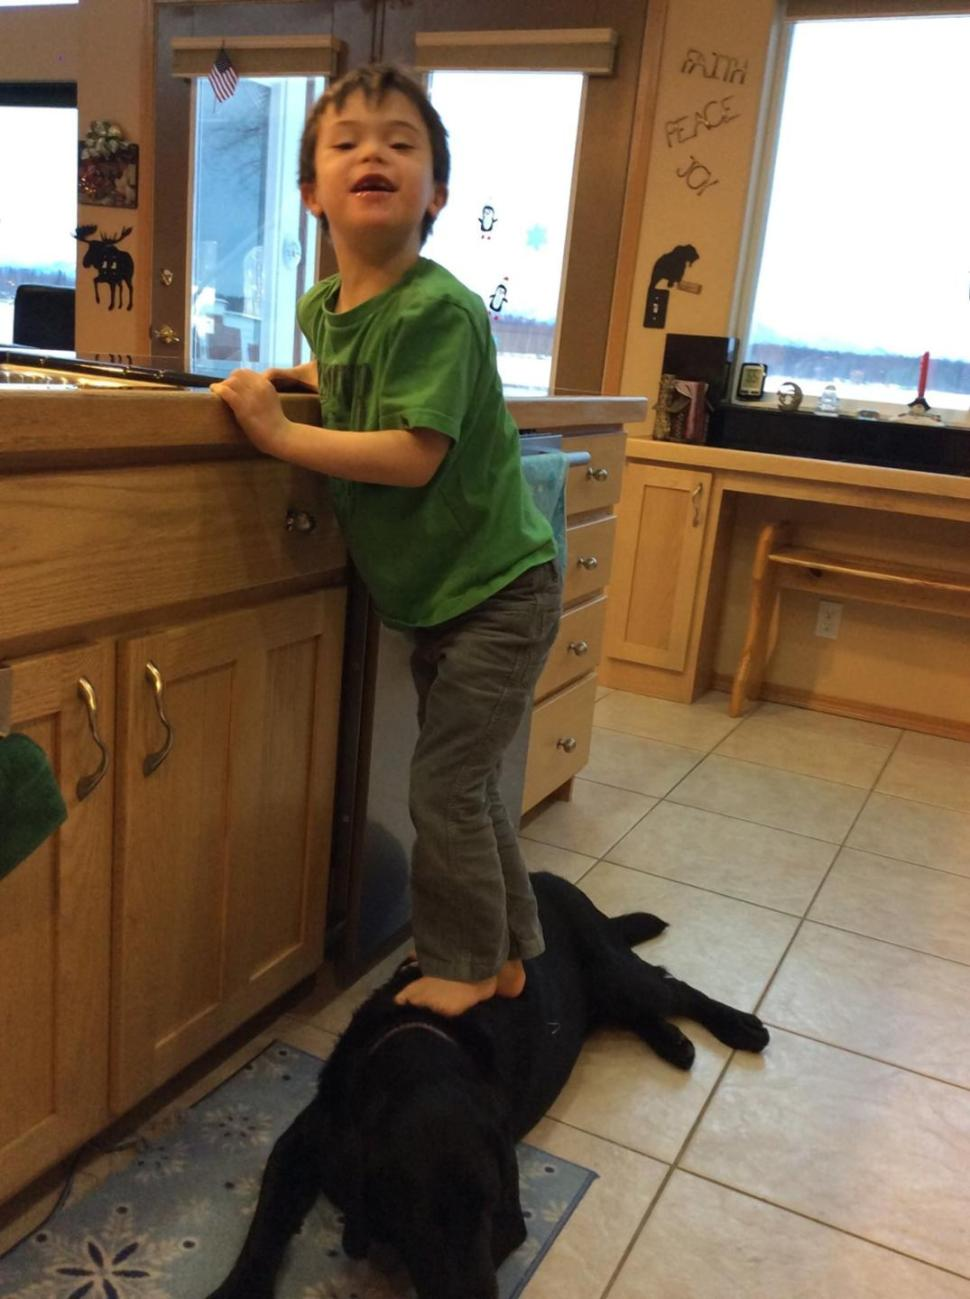 Palins kid stands on dog